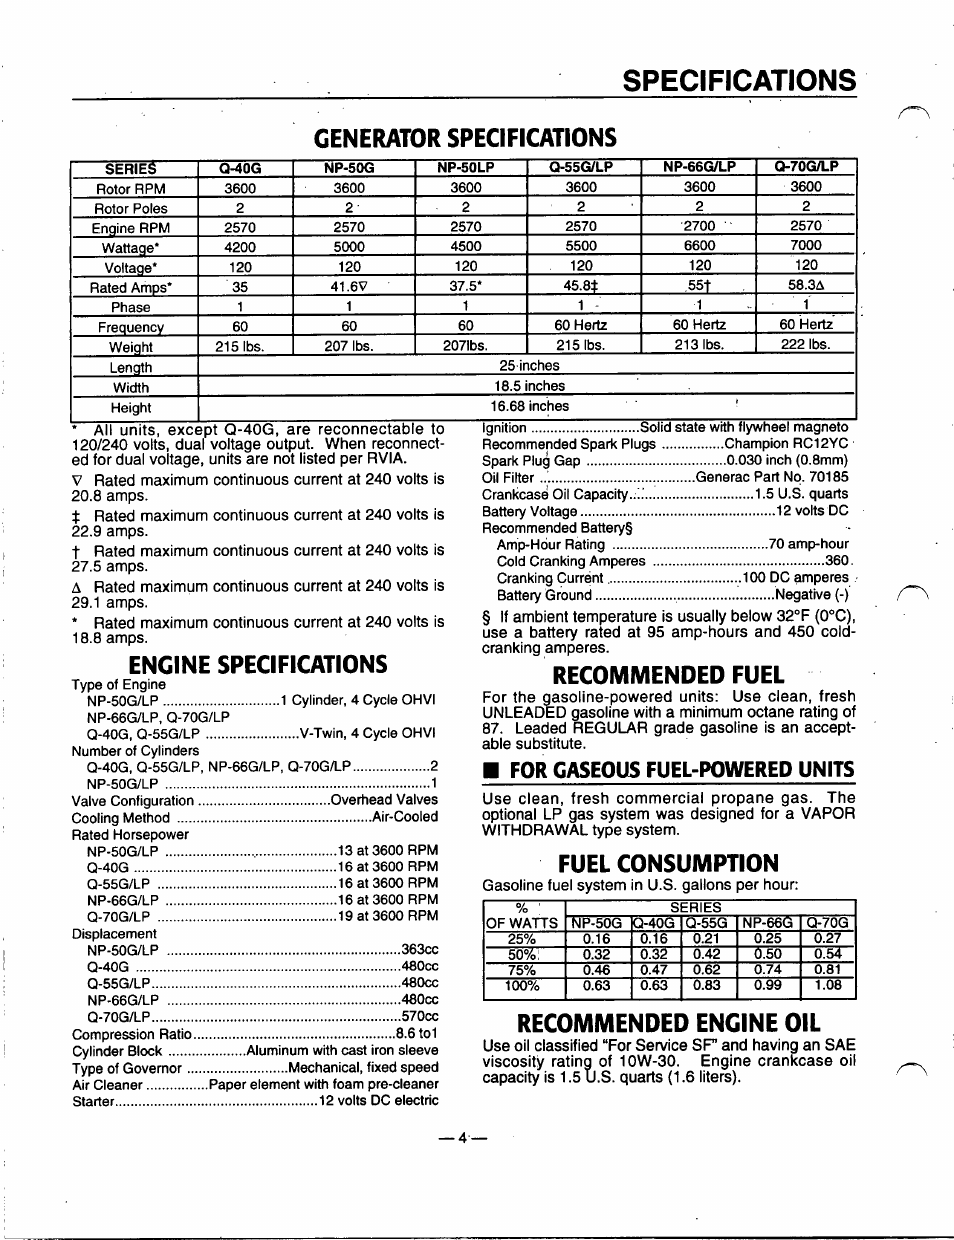 generator specifications, engine specifications, recommended fuel | generac  power systems 91355 user manual | page 6 / 32